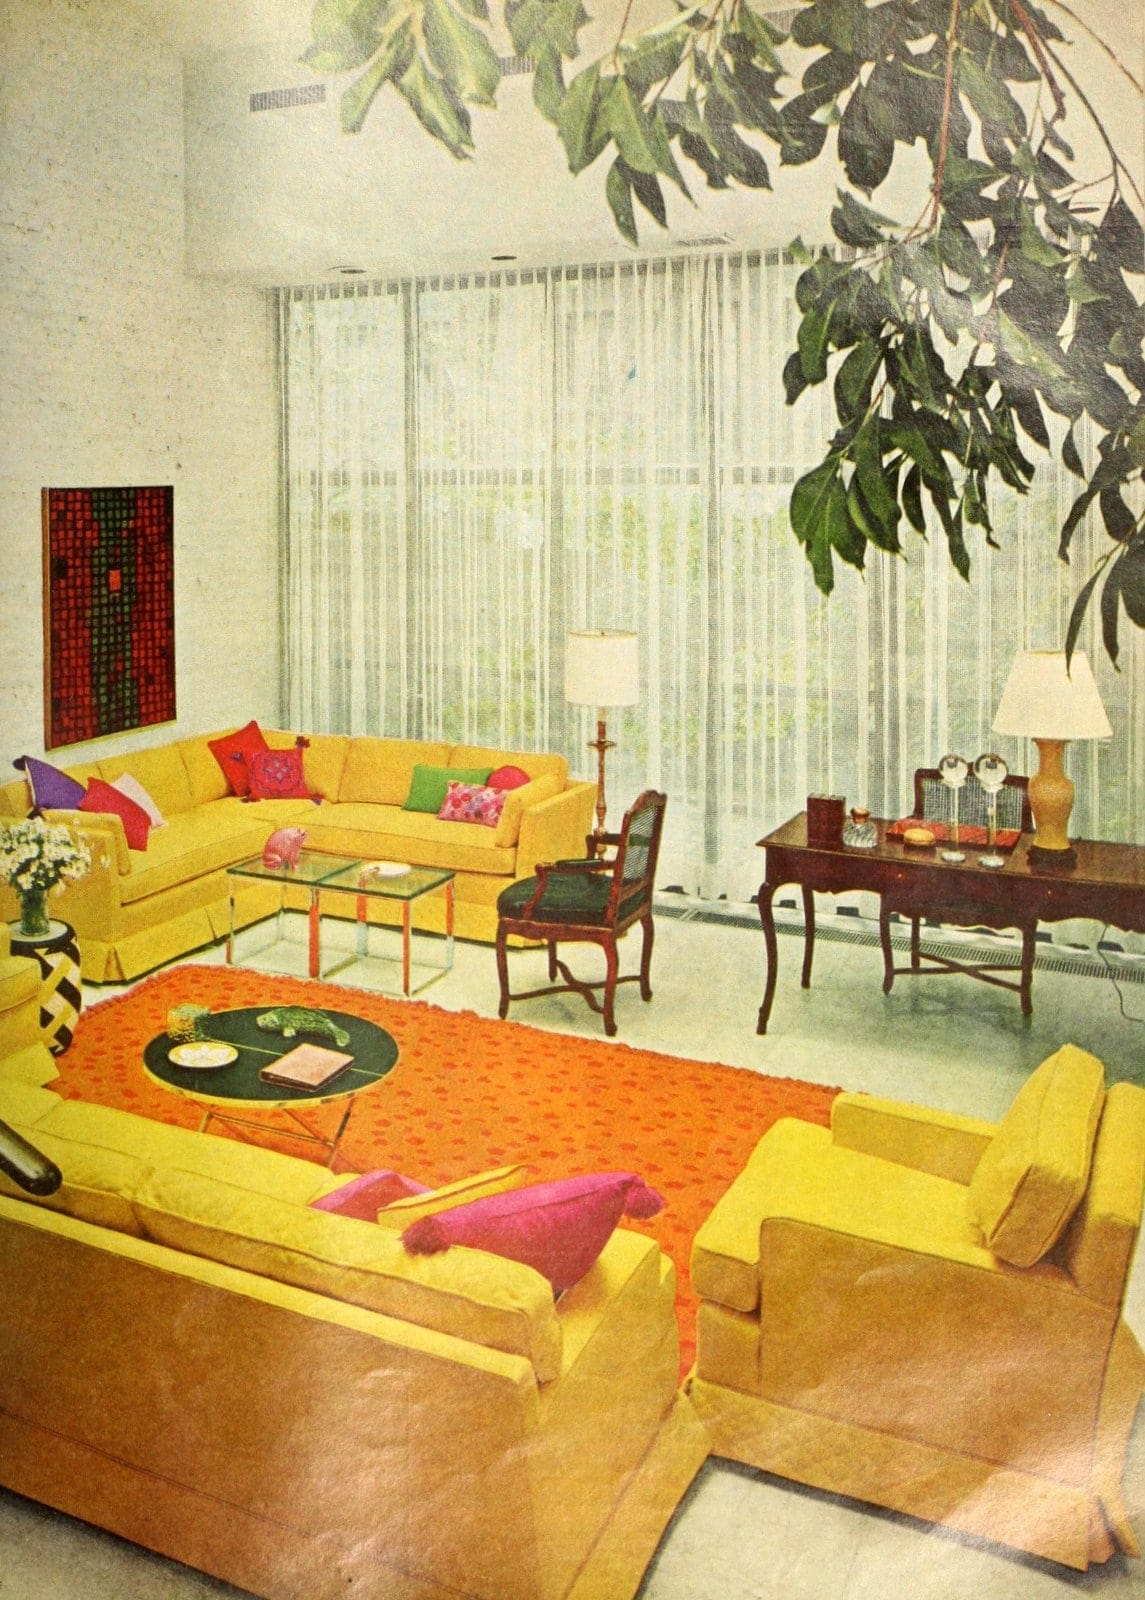 Bright yellow sofas in vintage 1960s living room decor (1966)